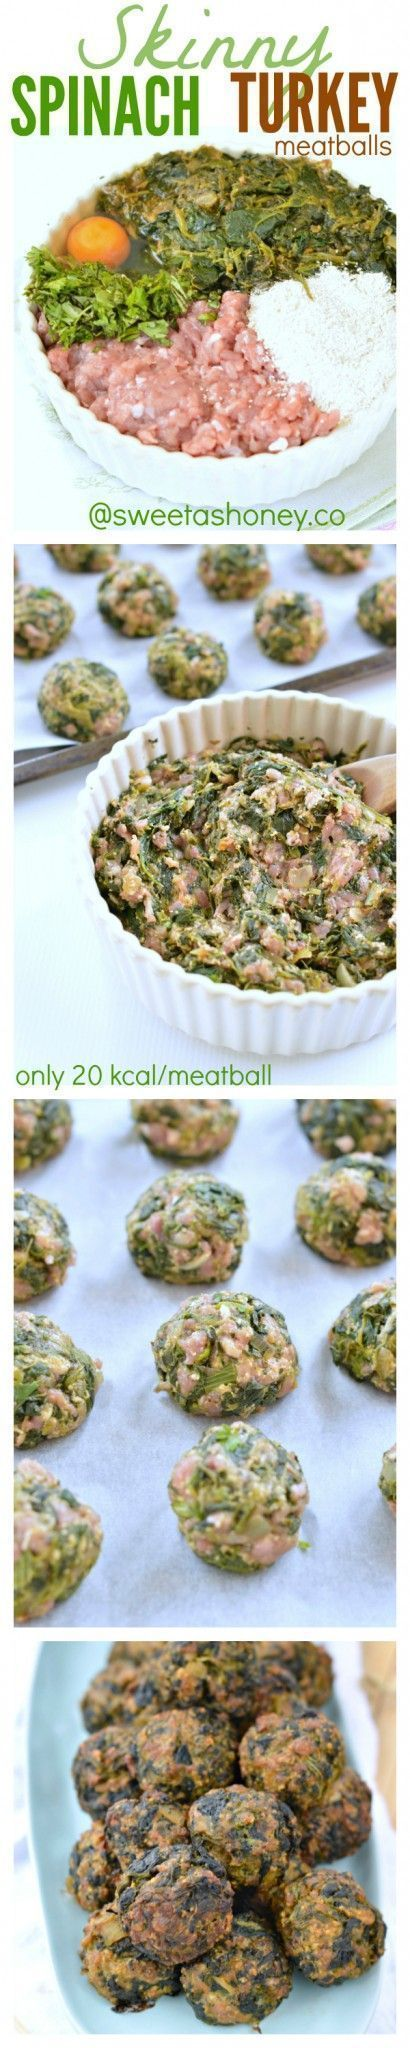 Spinach Turkey Meatballs a perfect clean eating appetizer. Skinny meatballs recipe with only 20 kcal/meatballs and only wholesome ingredients. Gluten free meatballs and dairy free meatballs too!